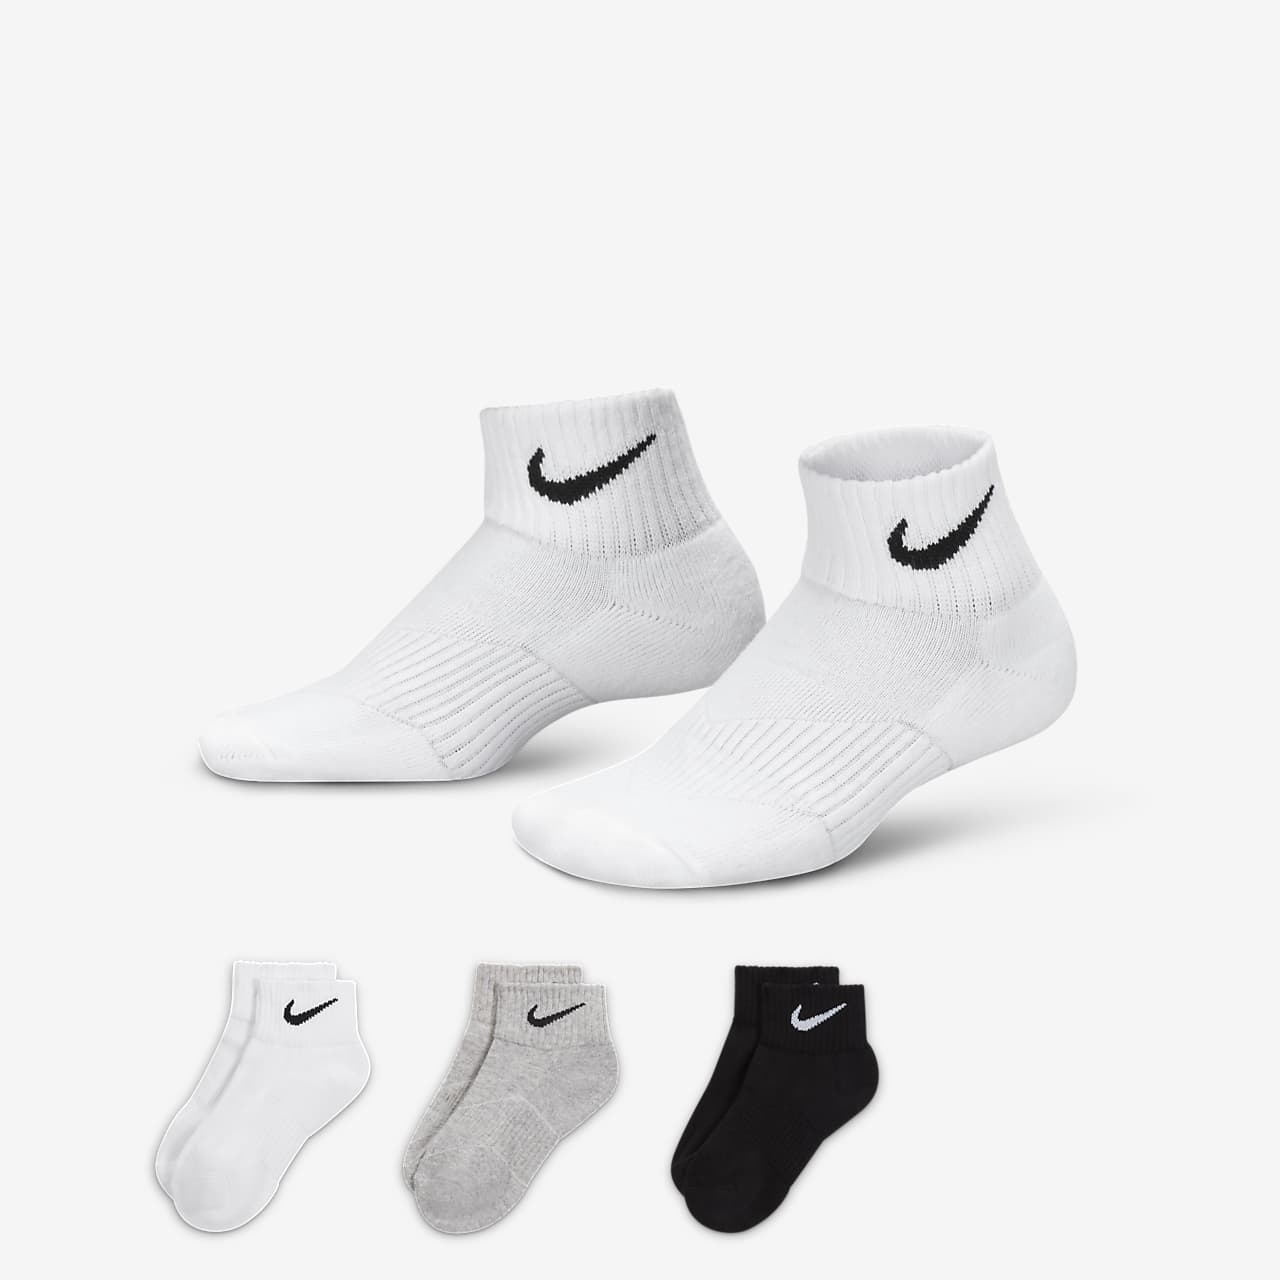 Nike Performance Cushion Quarter Older Kids' Socks (3 Pair)